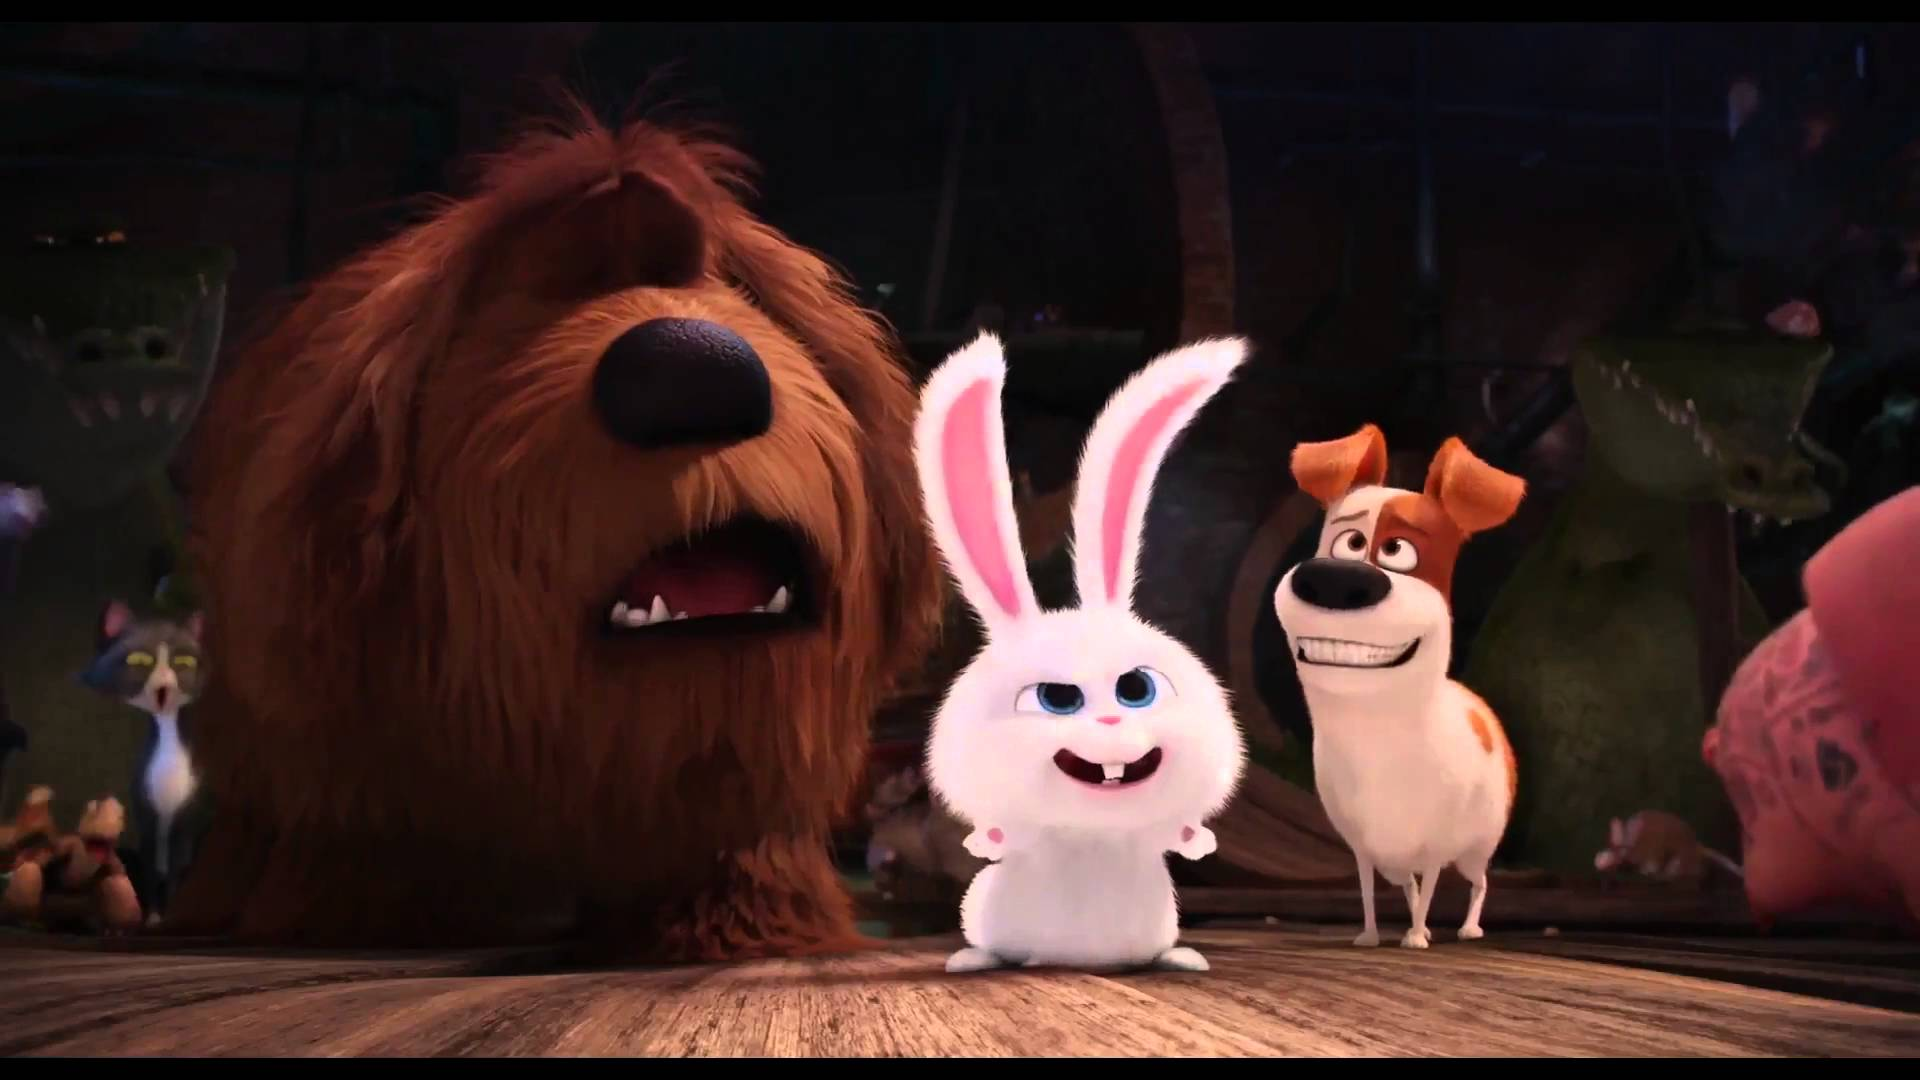 The Secret Life of Pets Wallpaper   HD Wallpapers Backgrounds of Your 1920x1080